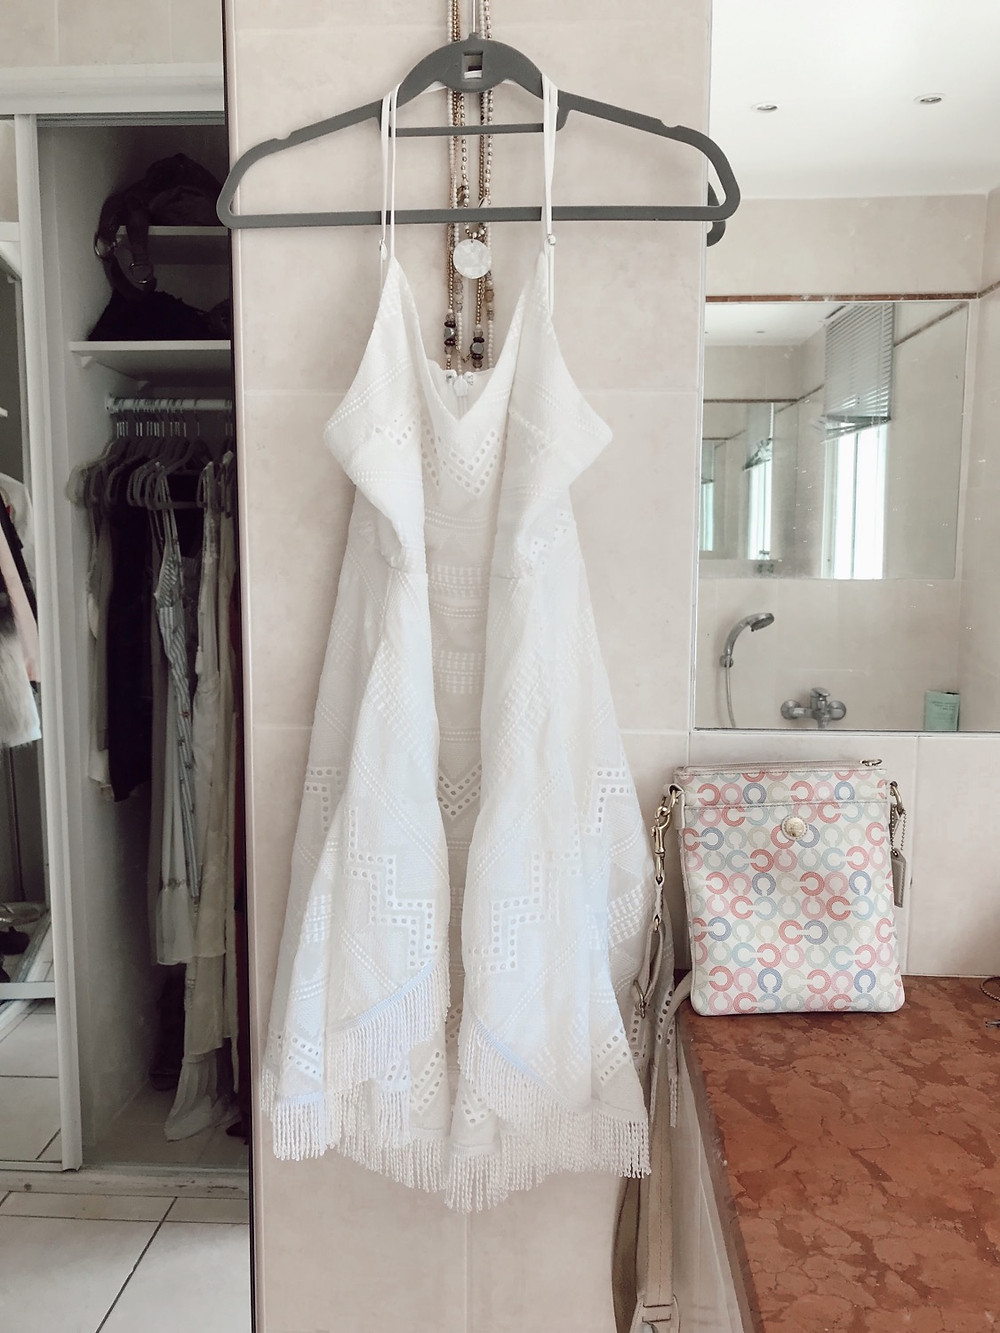 shrazzi travel tips how to keep your whites white & other laundry tips